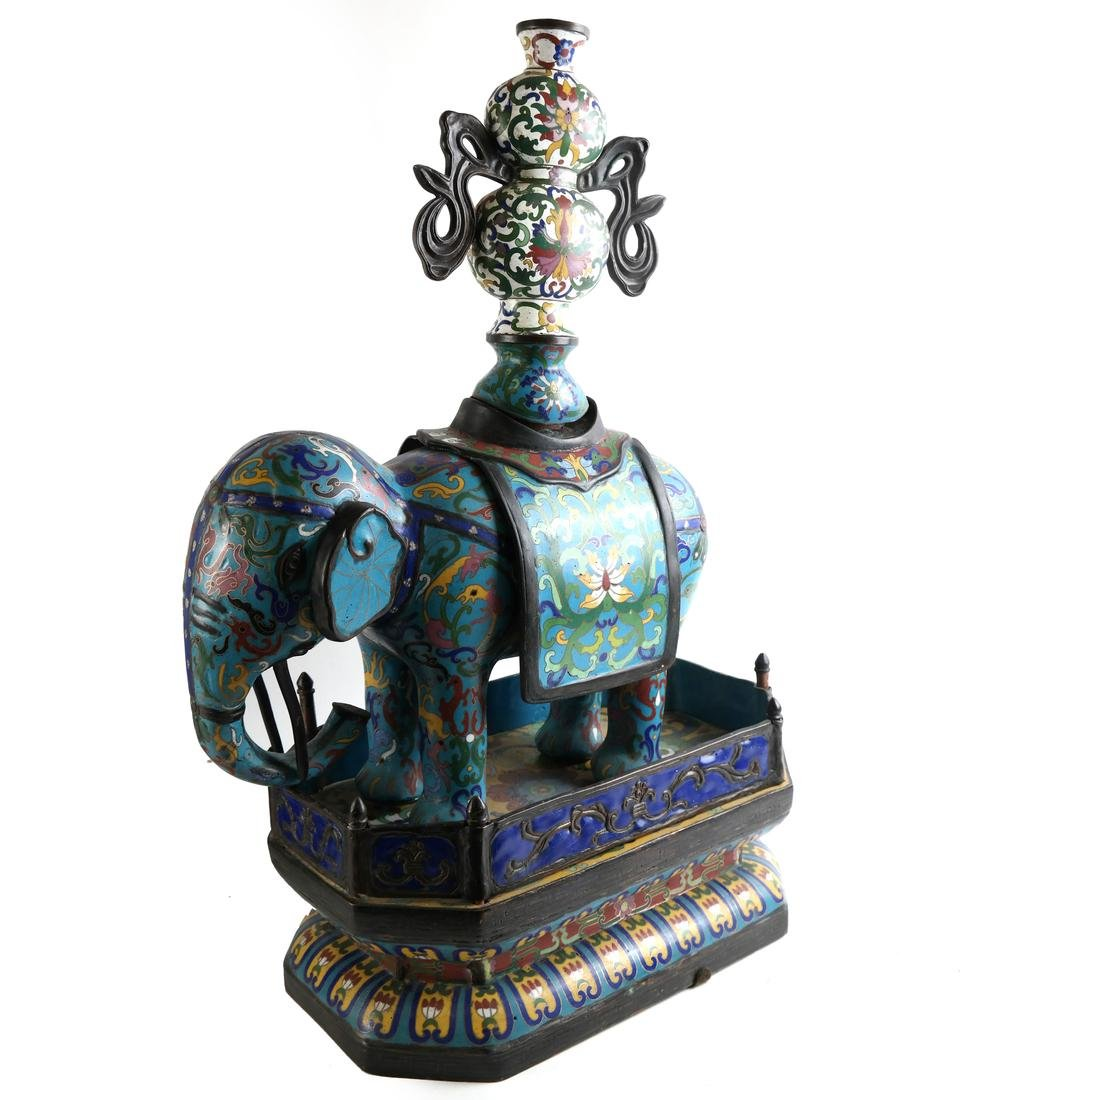 Pr Chinese Cloisonne Elephants with Vase - 4